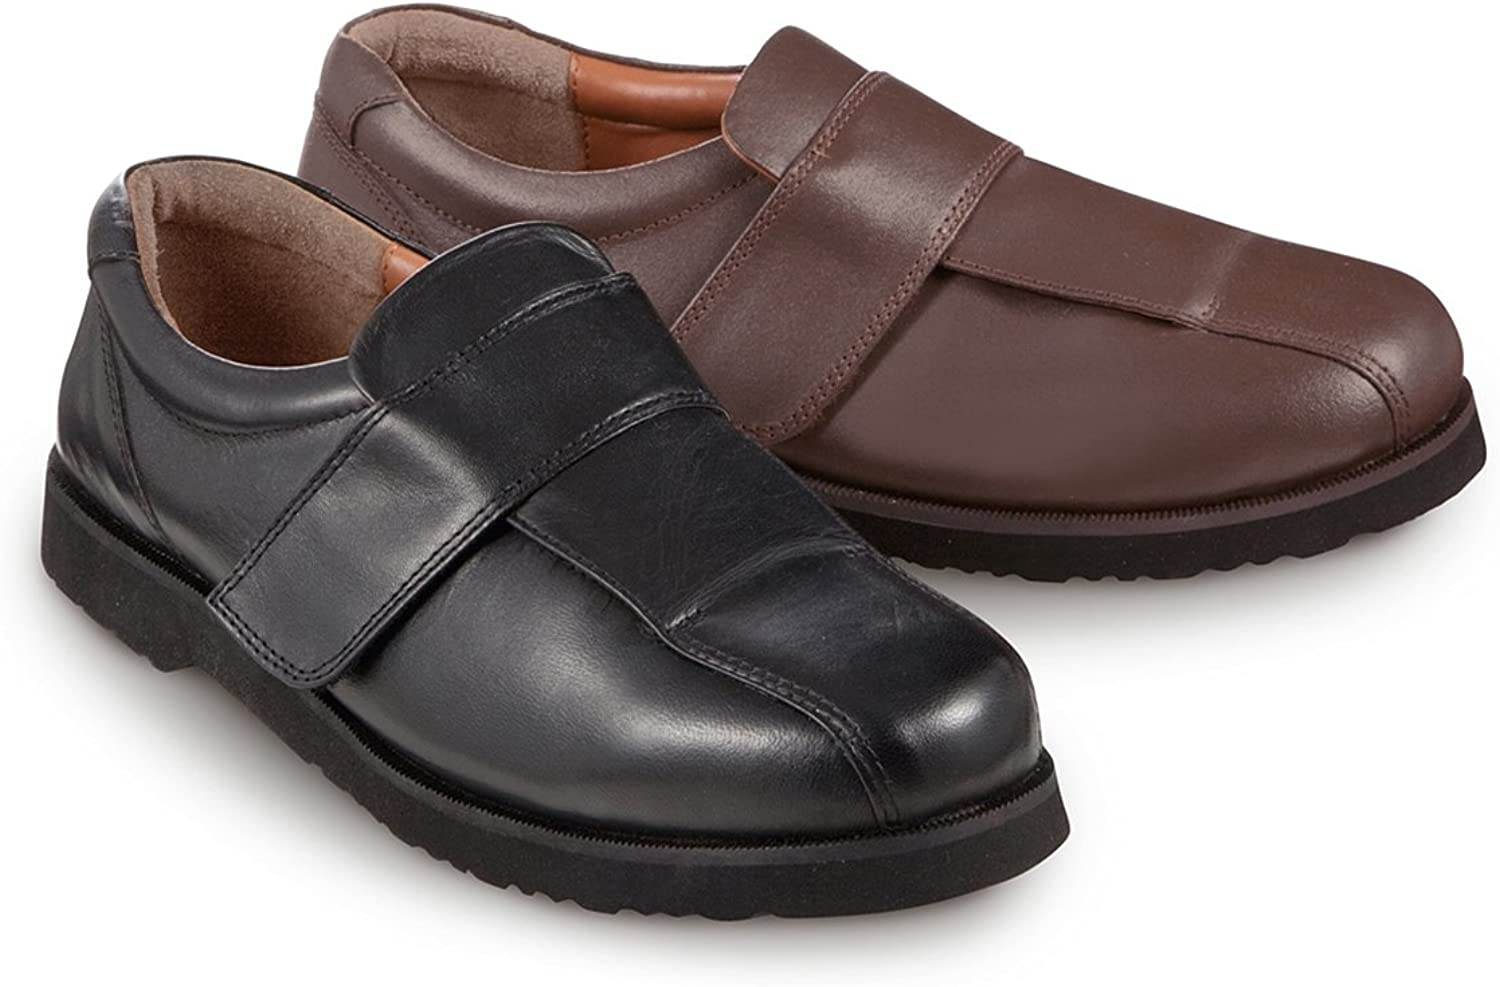 Mens Leather Wide Opening Touch Fasten Shoe